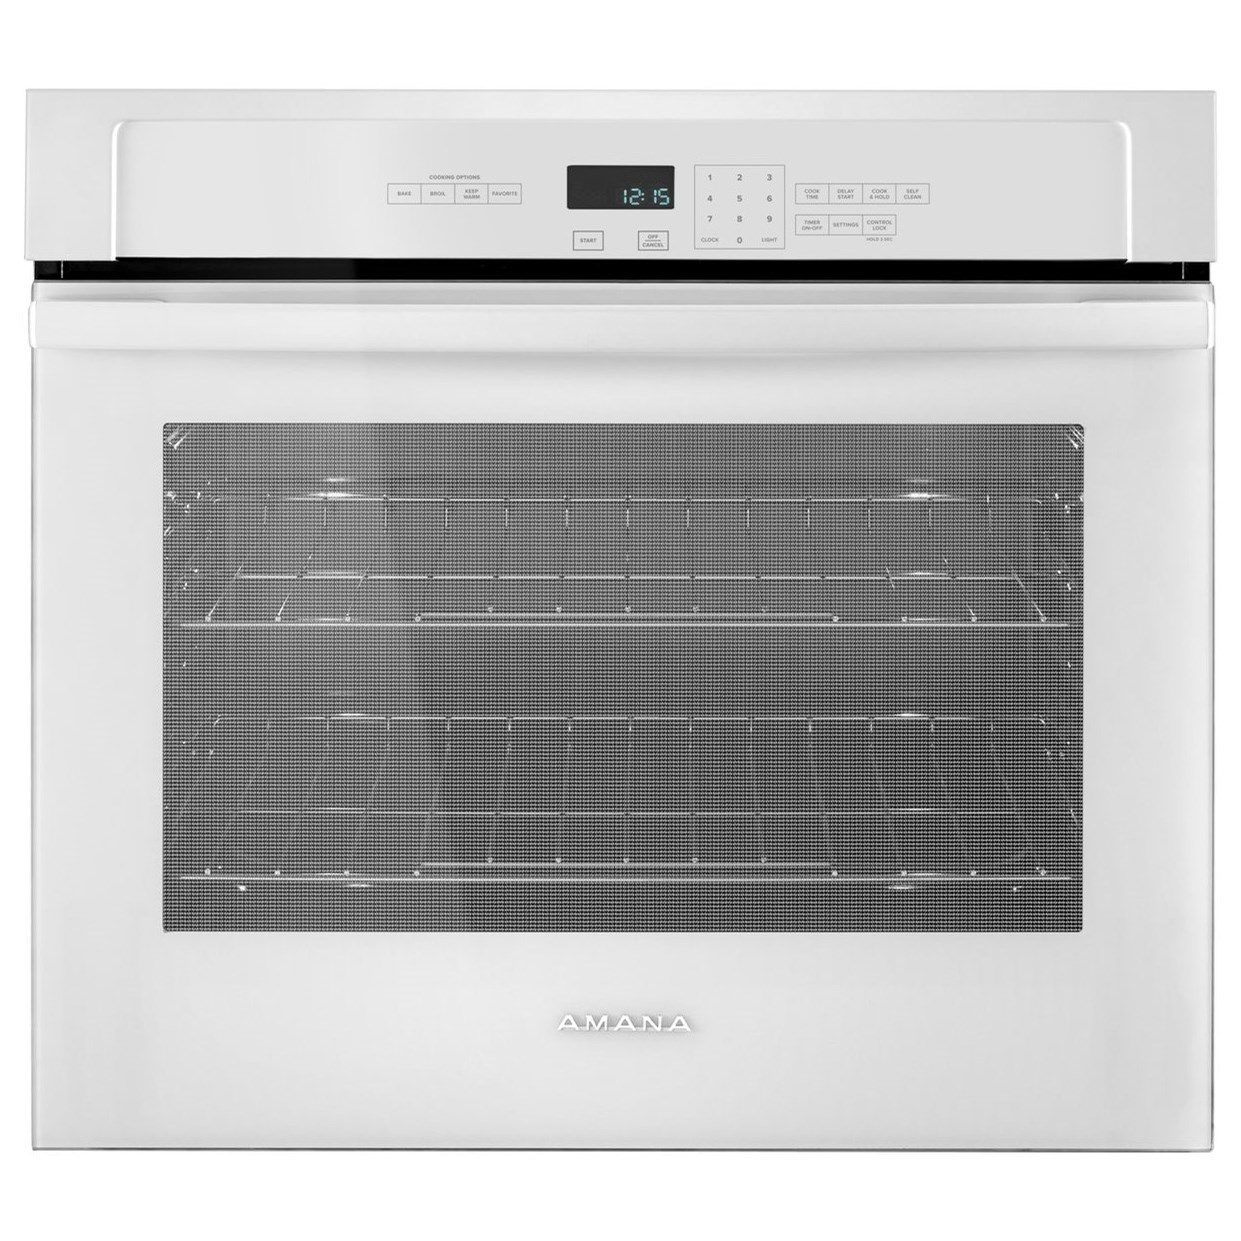 Amana Electric Wall Ovens - Amana 30-inch 5.0 Cu. Ft. Amana® Wall Oven - Item Number: AWO6313SFW